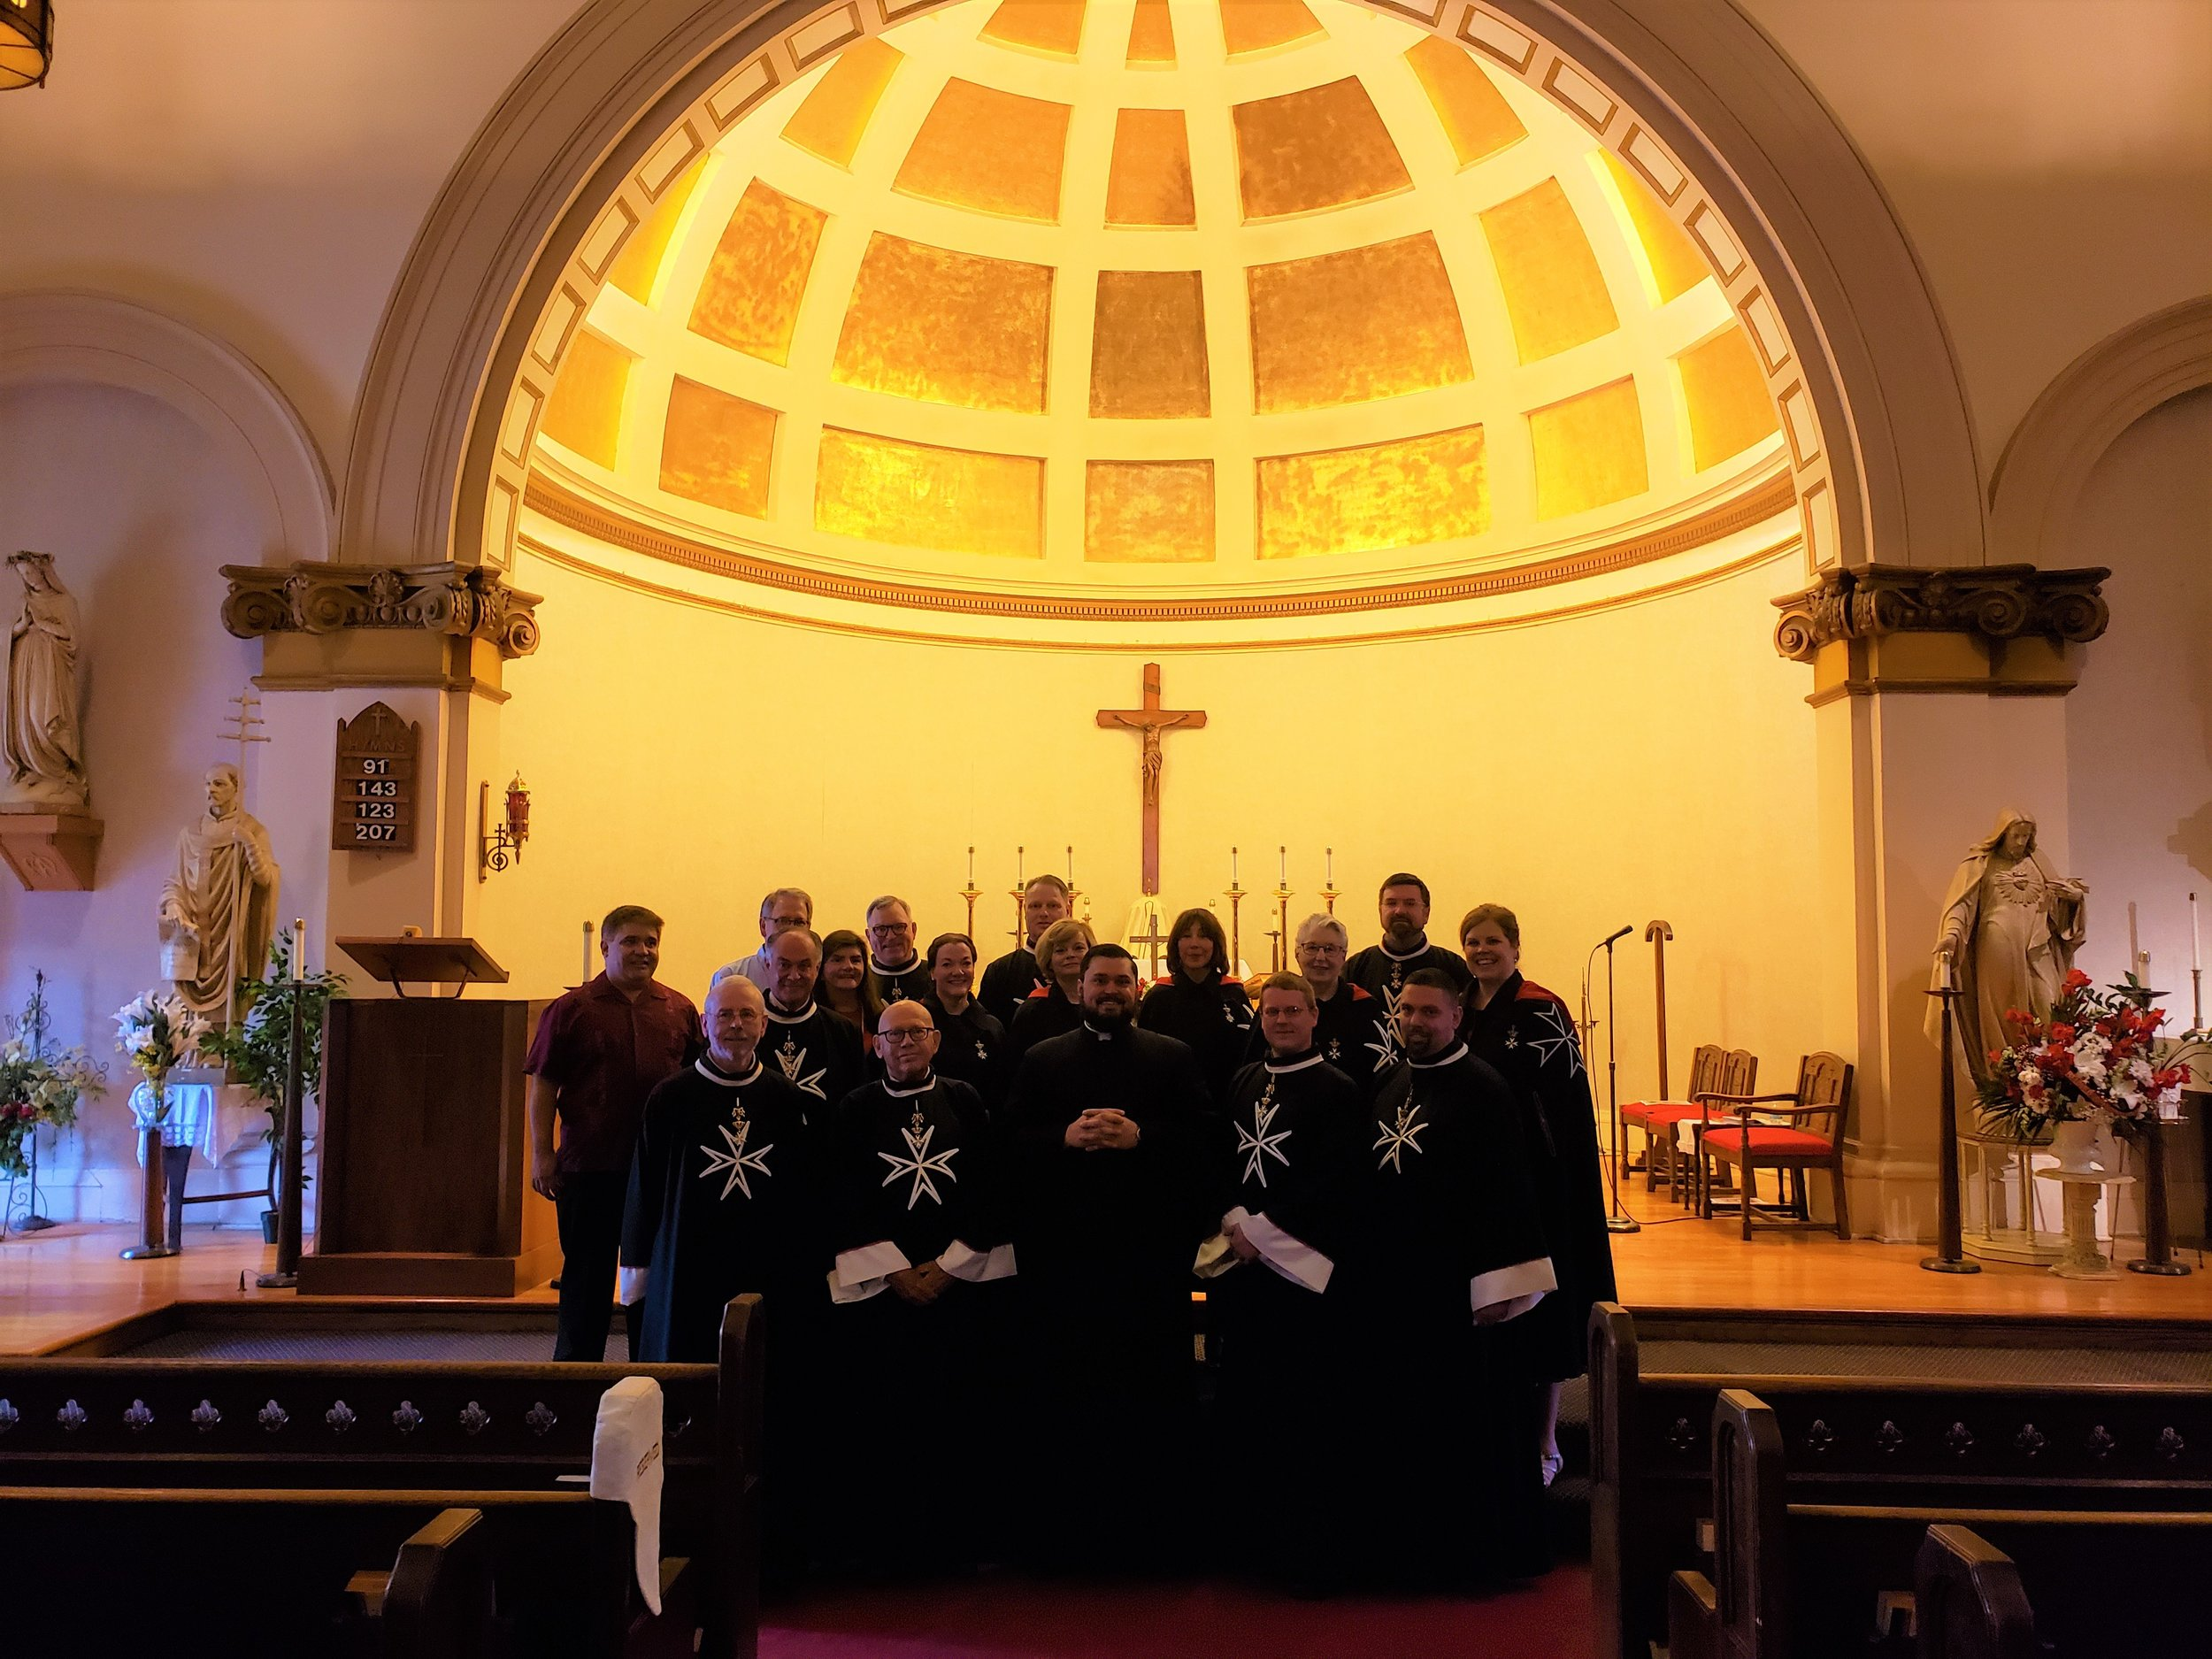 Kings of Malta at St. Clement